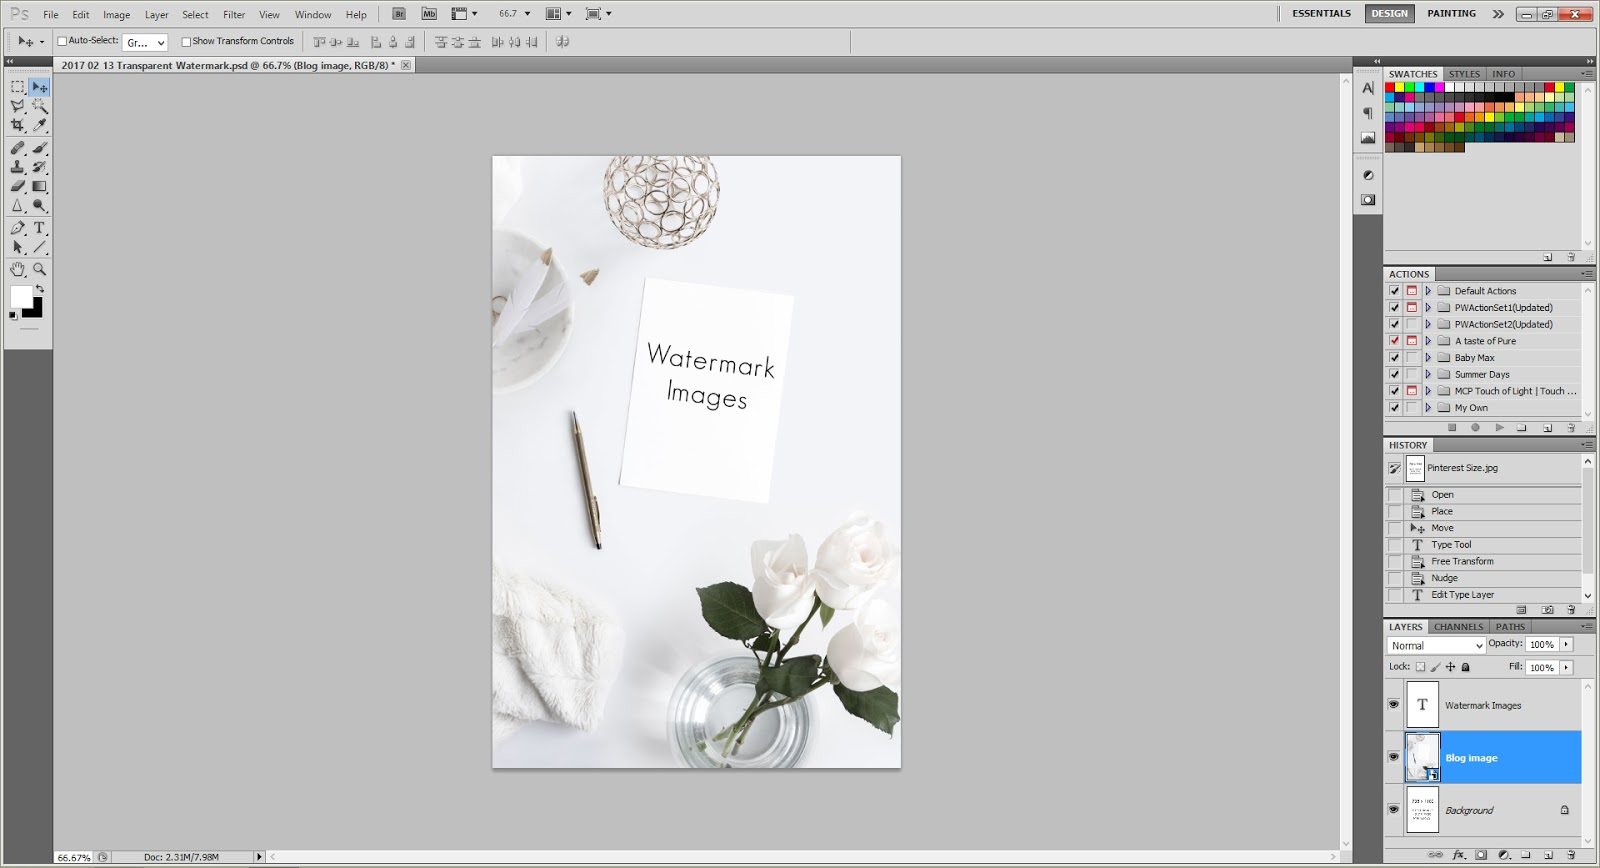 how to make text follow image in photoshop